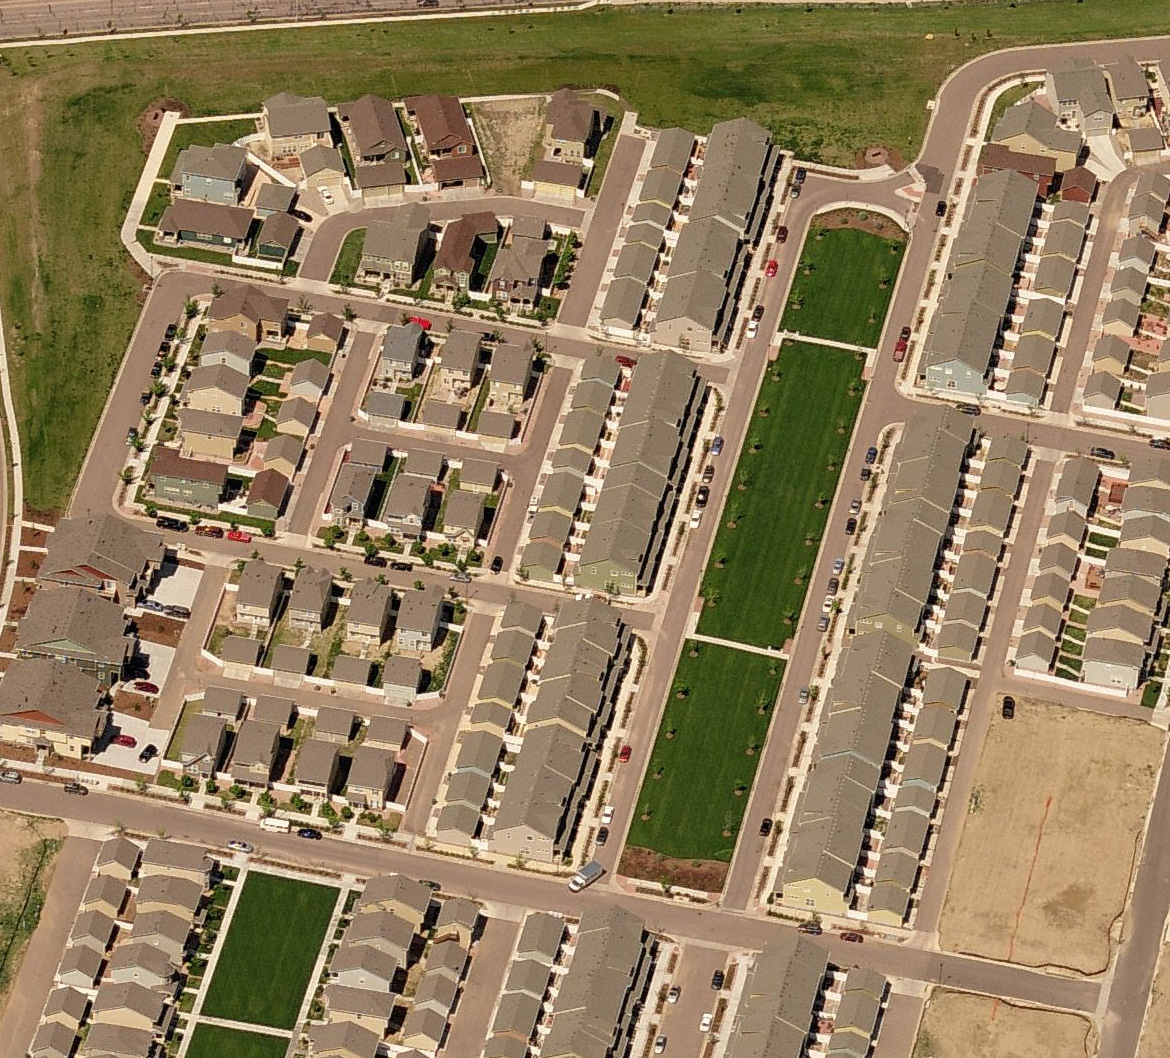 Neo Urbanism: A Neo-Traditional Neighborhood In Colorado